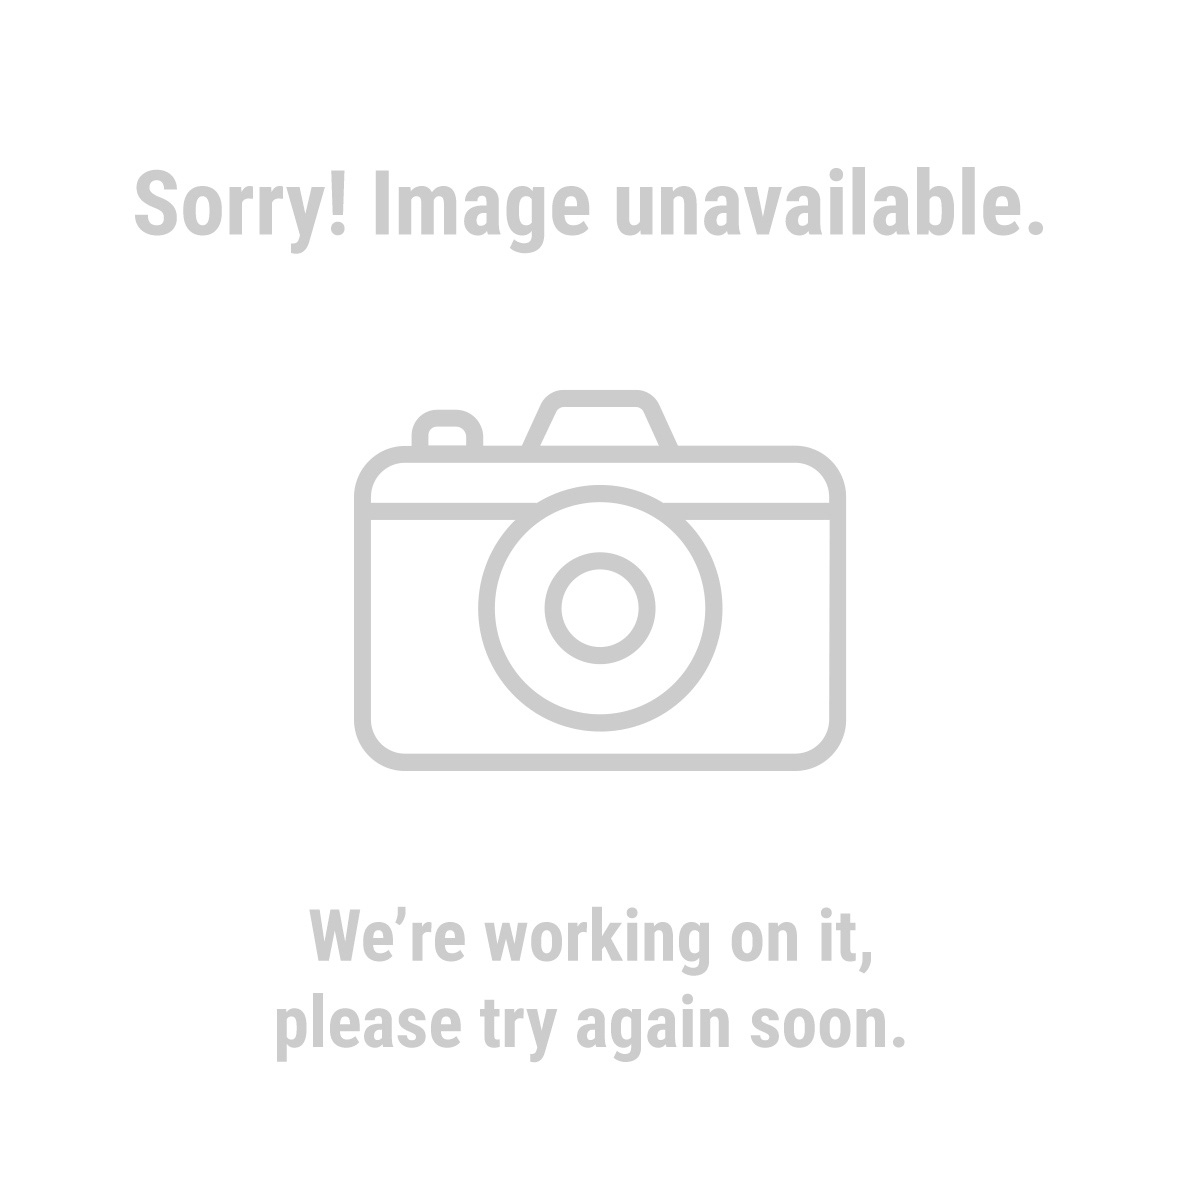 Warrior 61529 8 in. Finishing Foam Pad